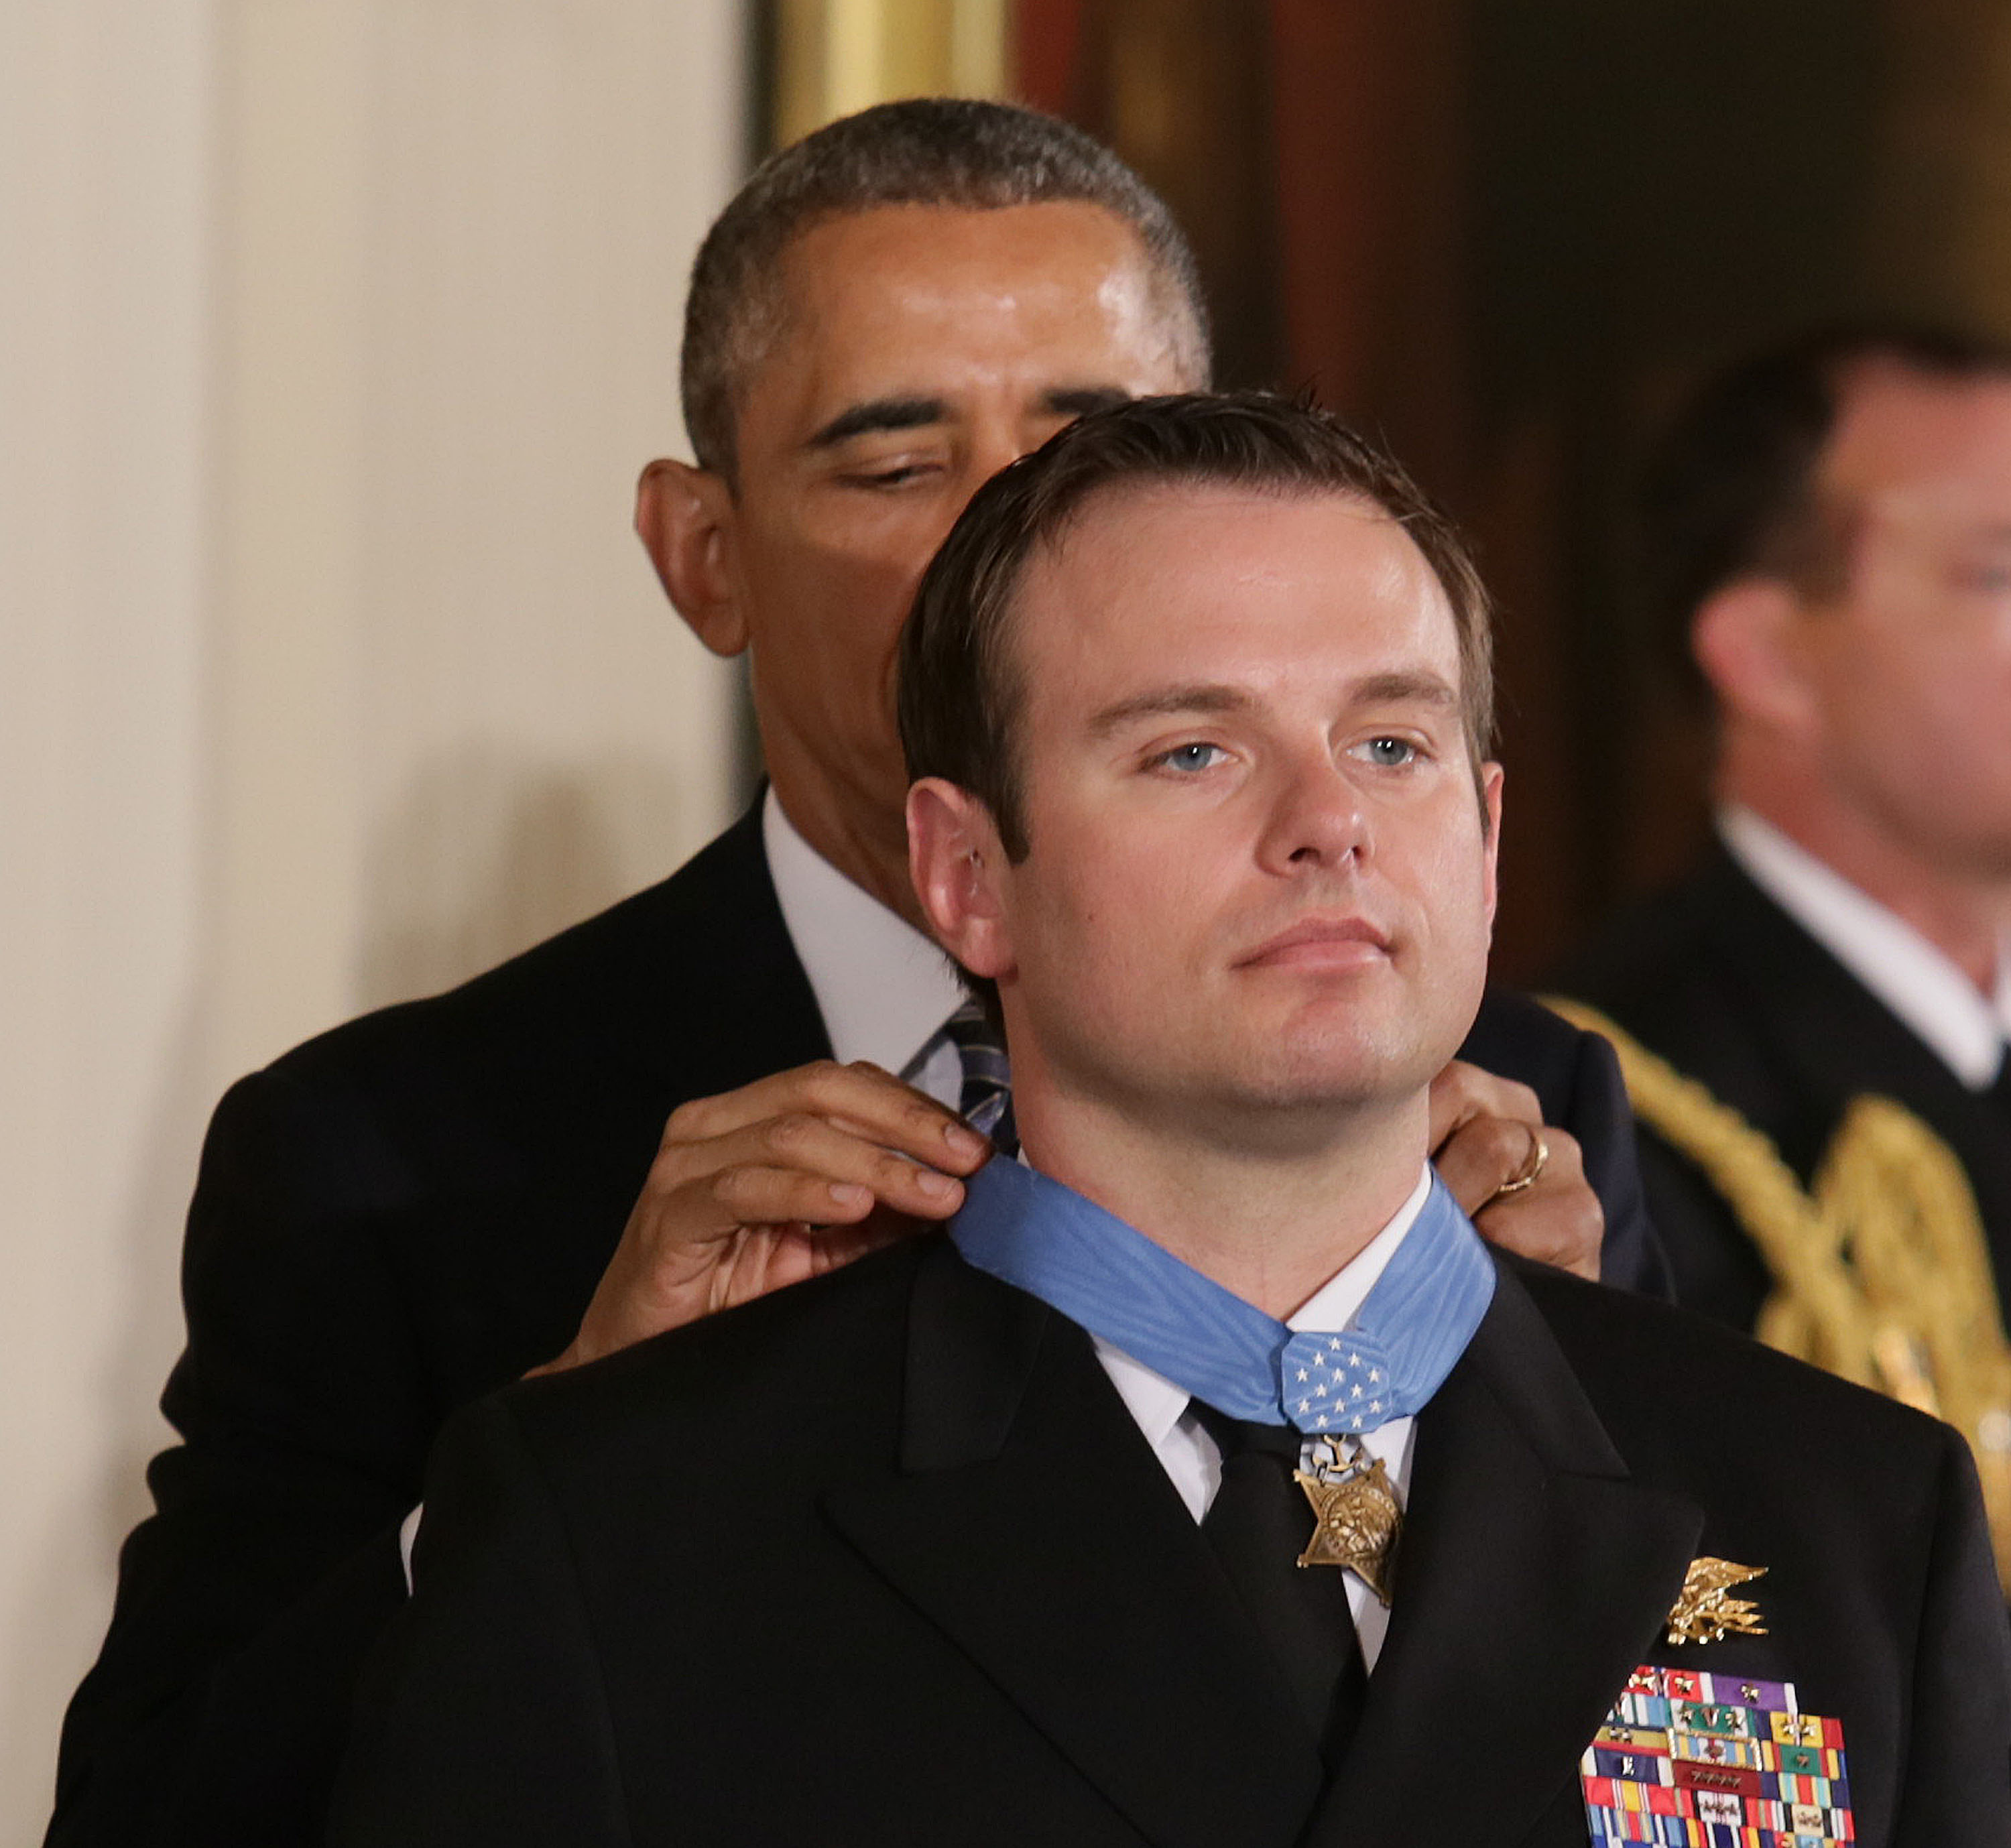 President Barack Obama presents the Medal of Honor to Senior Chief Special Warfare Operator (SEAL) Edward C. Byers Jr. during a ceremony Monday at the White House. (U.S. Navy photo by Oscar Sosa)